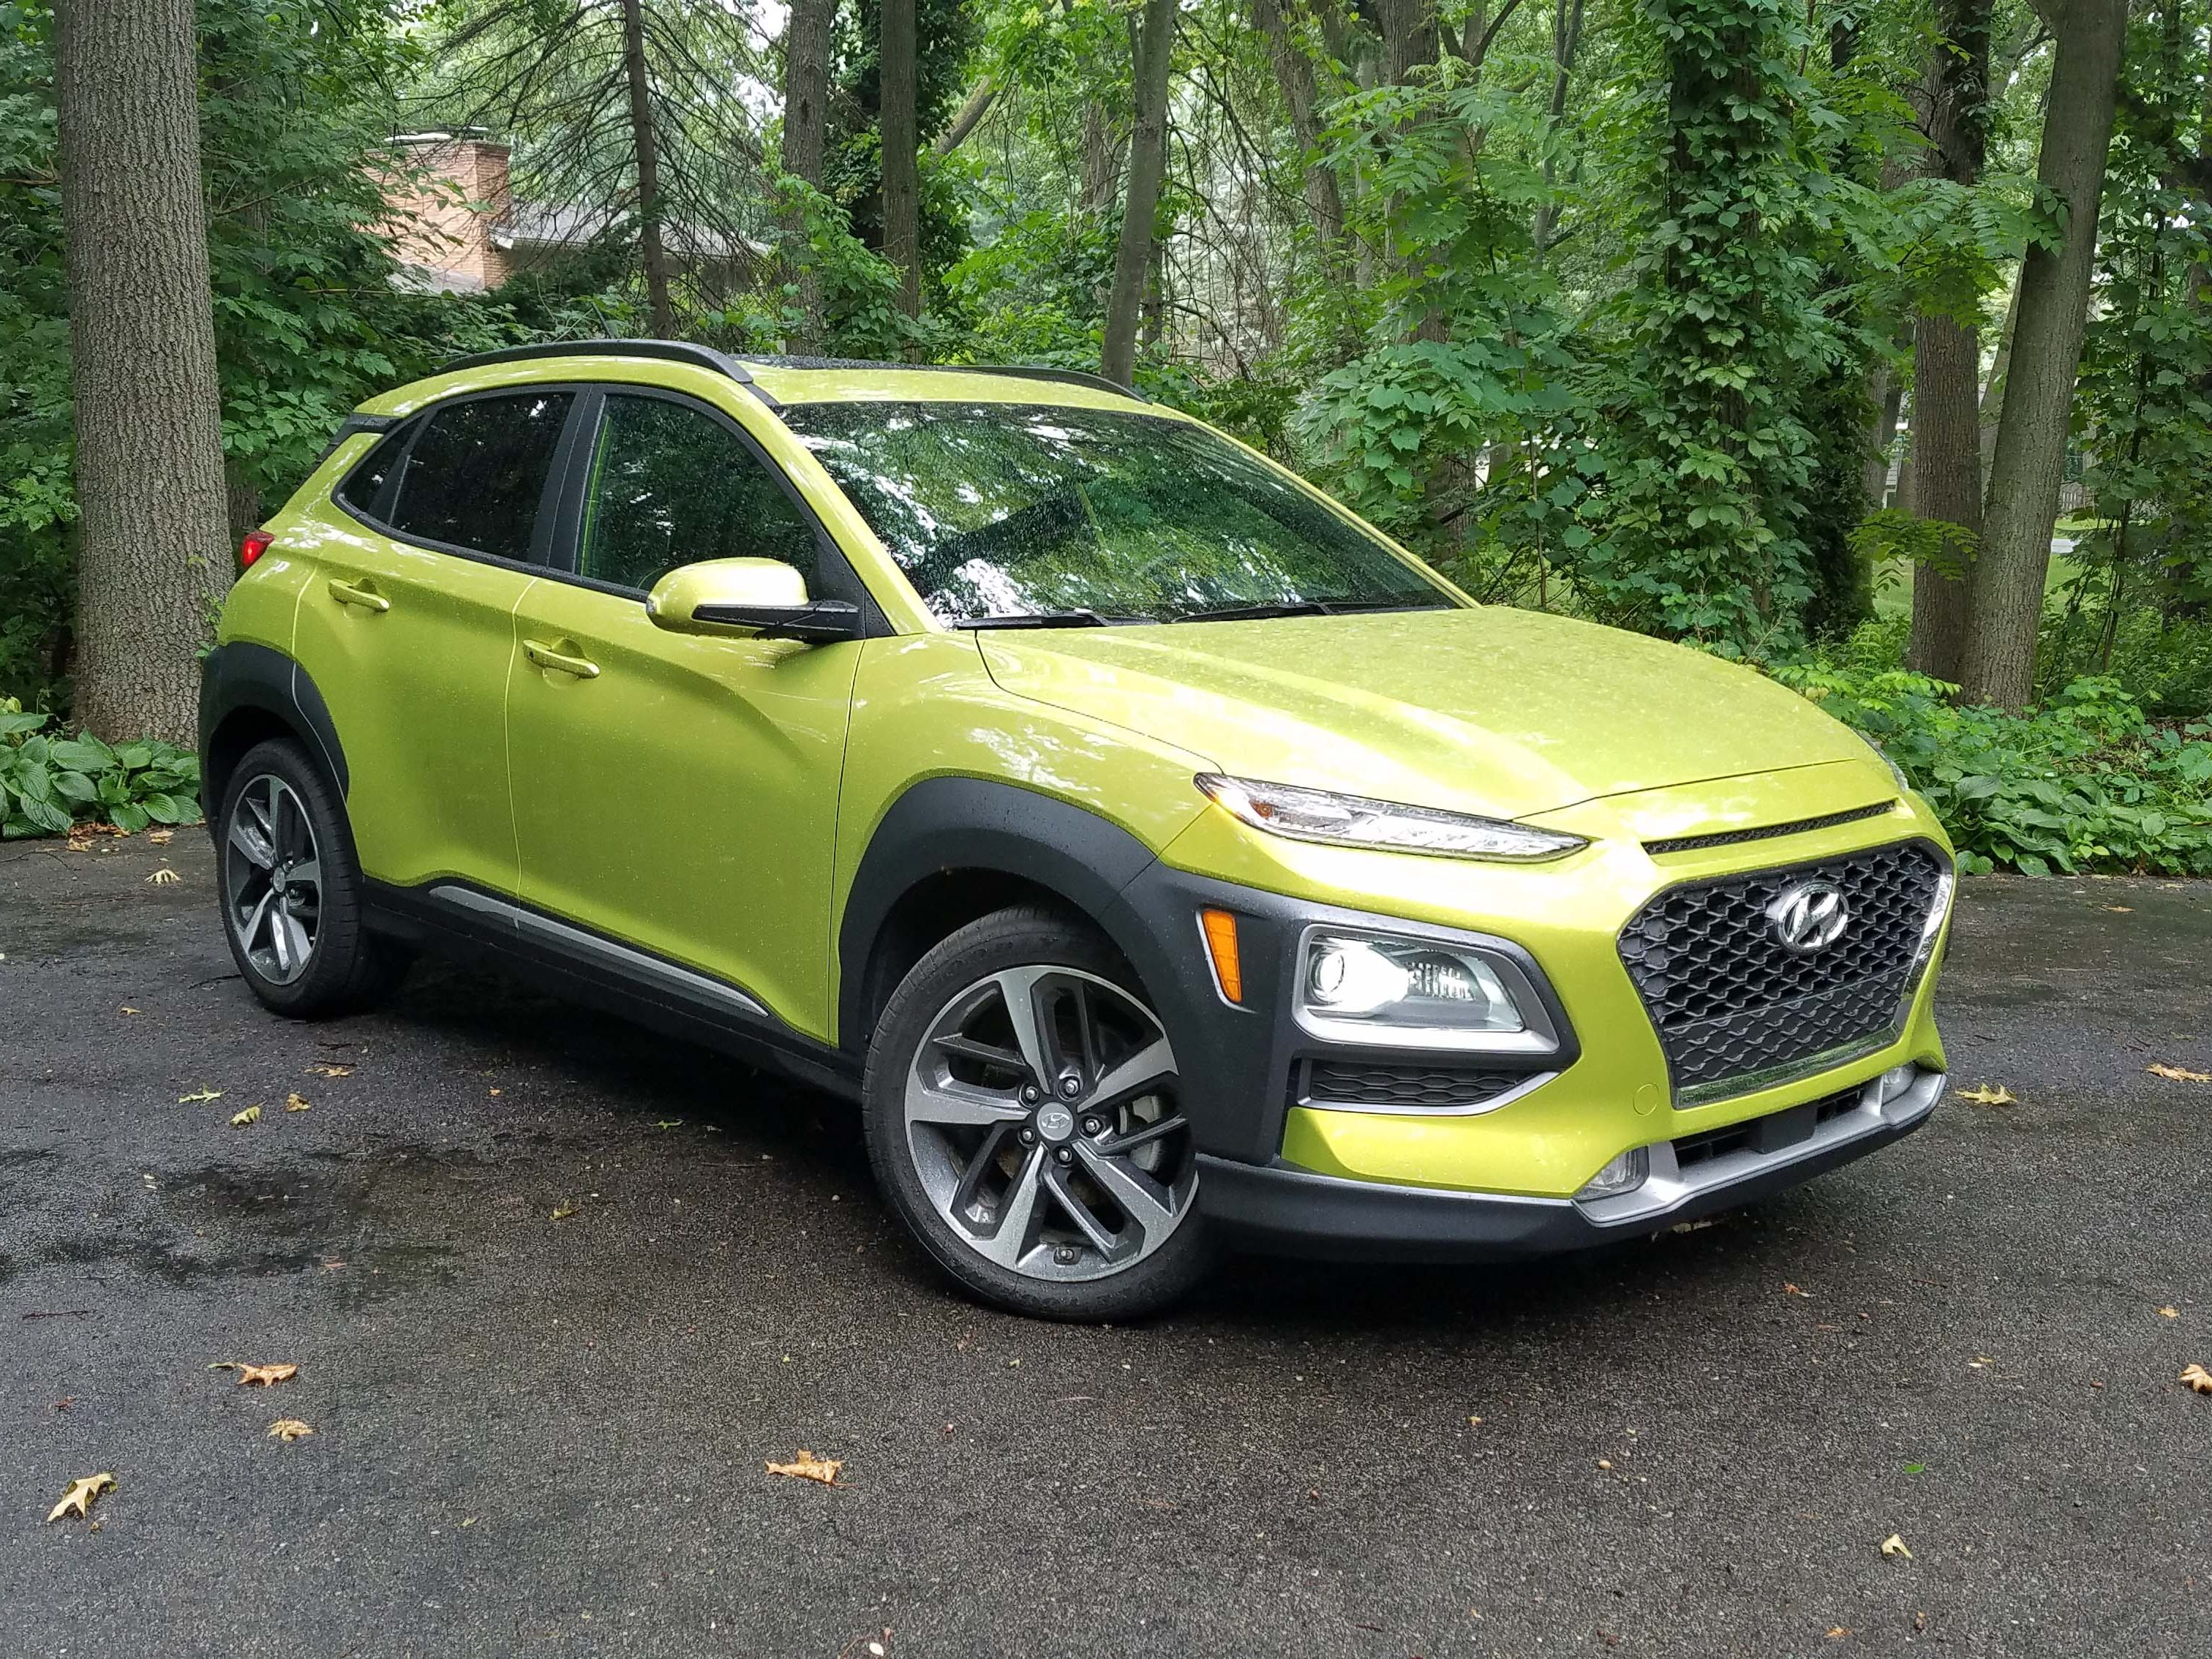 Where Toyota and Mazda stop with 2.5-liter, 145-horse four-bangers, the 2018 Hyundai Kona offers the same pair of engines that comes with the sporty Hyundai Veloster sports coupe Ð 143-horse, 2.0-liter 4-banger and 175-horse, 193-torque, 1.6-liter turbo.